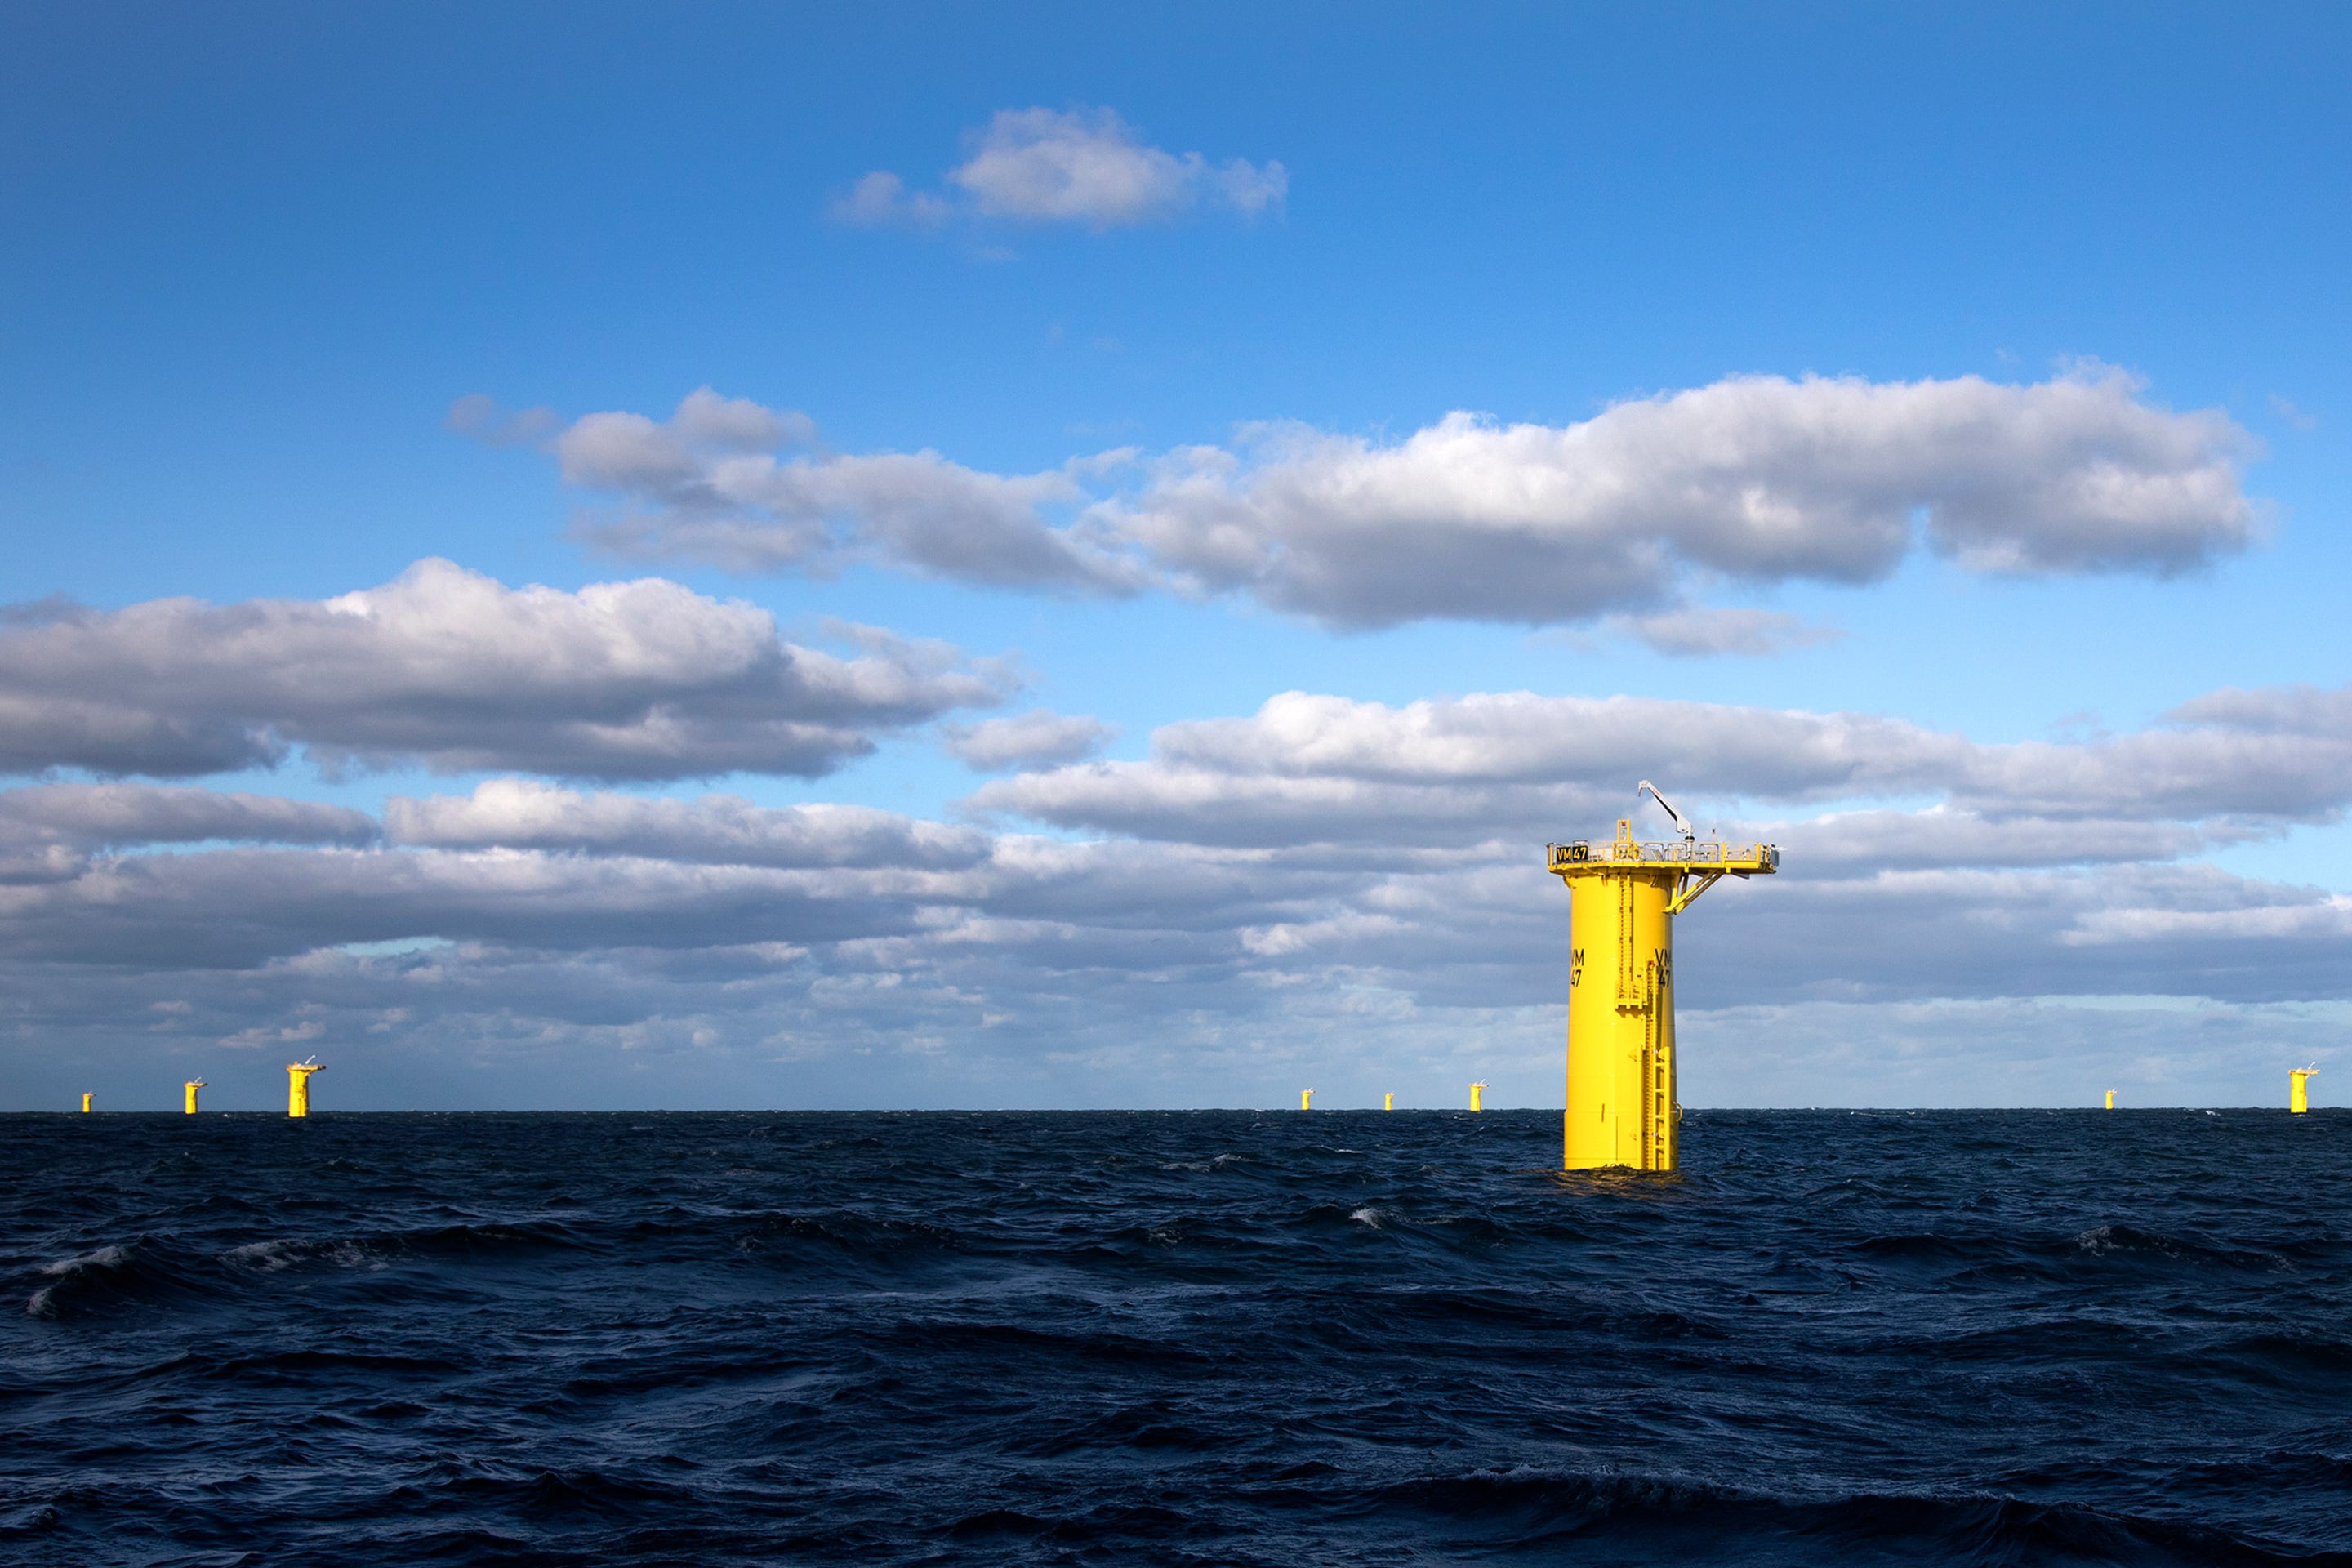 The Veja Mate wind offshore farm